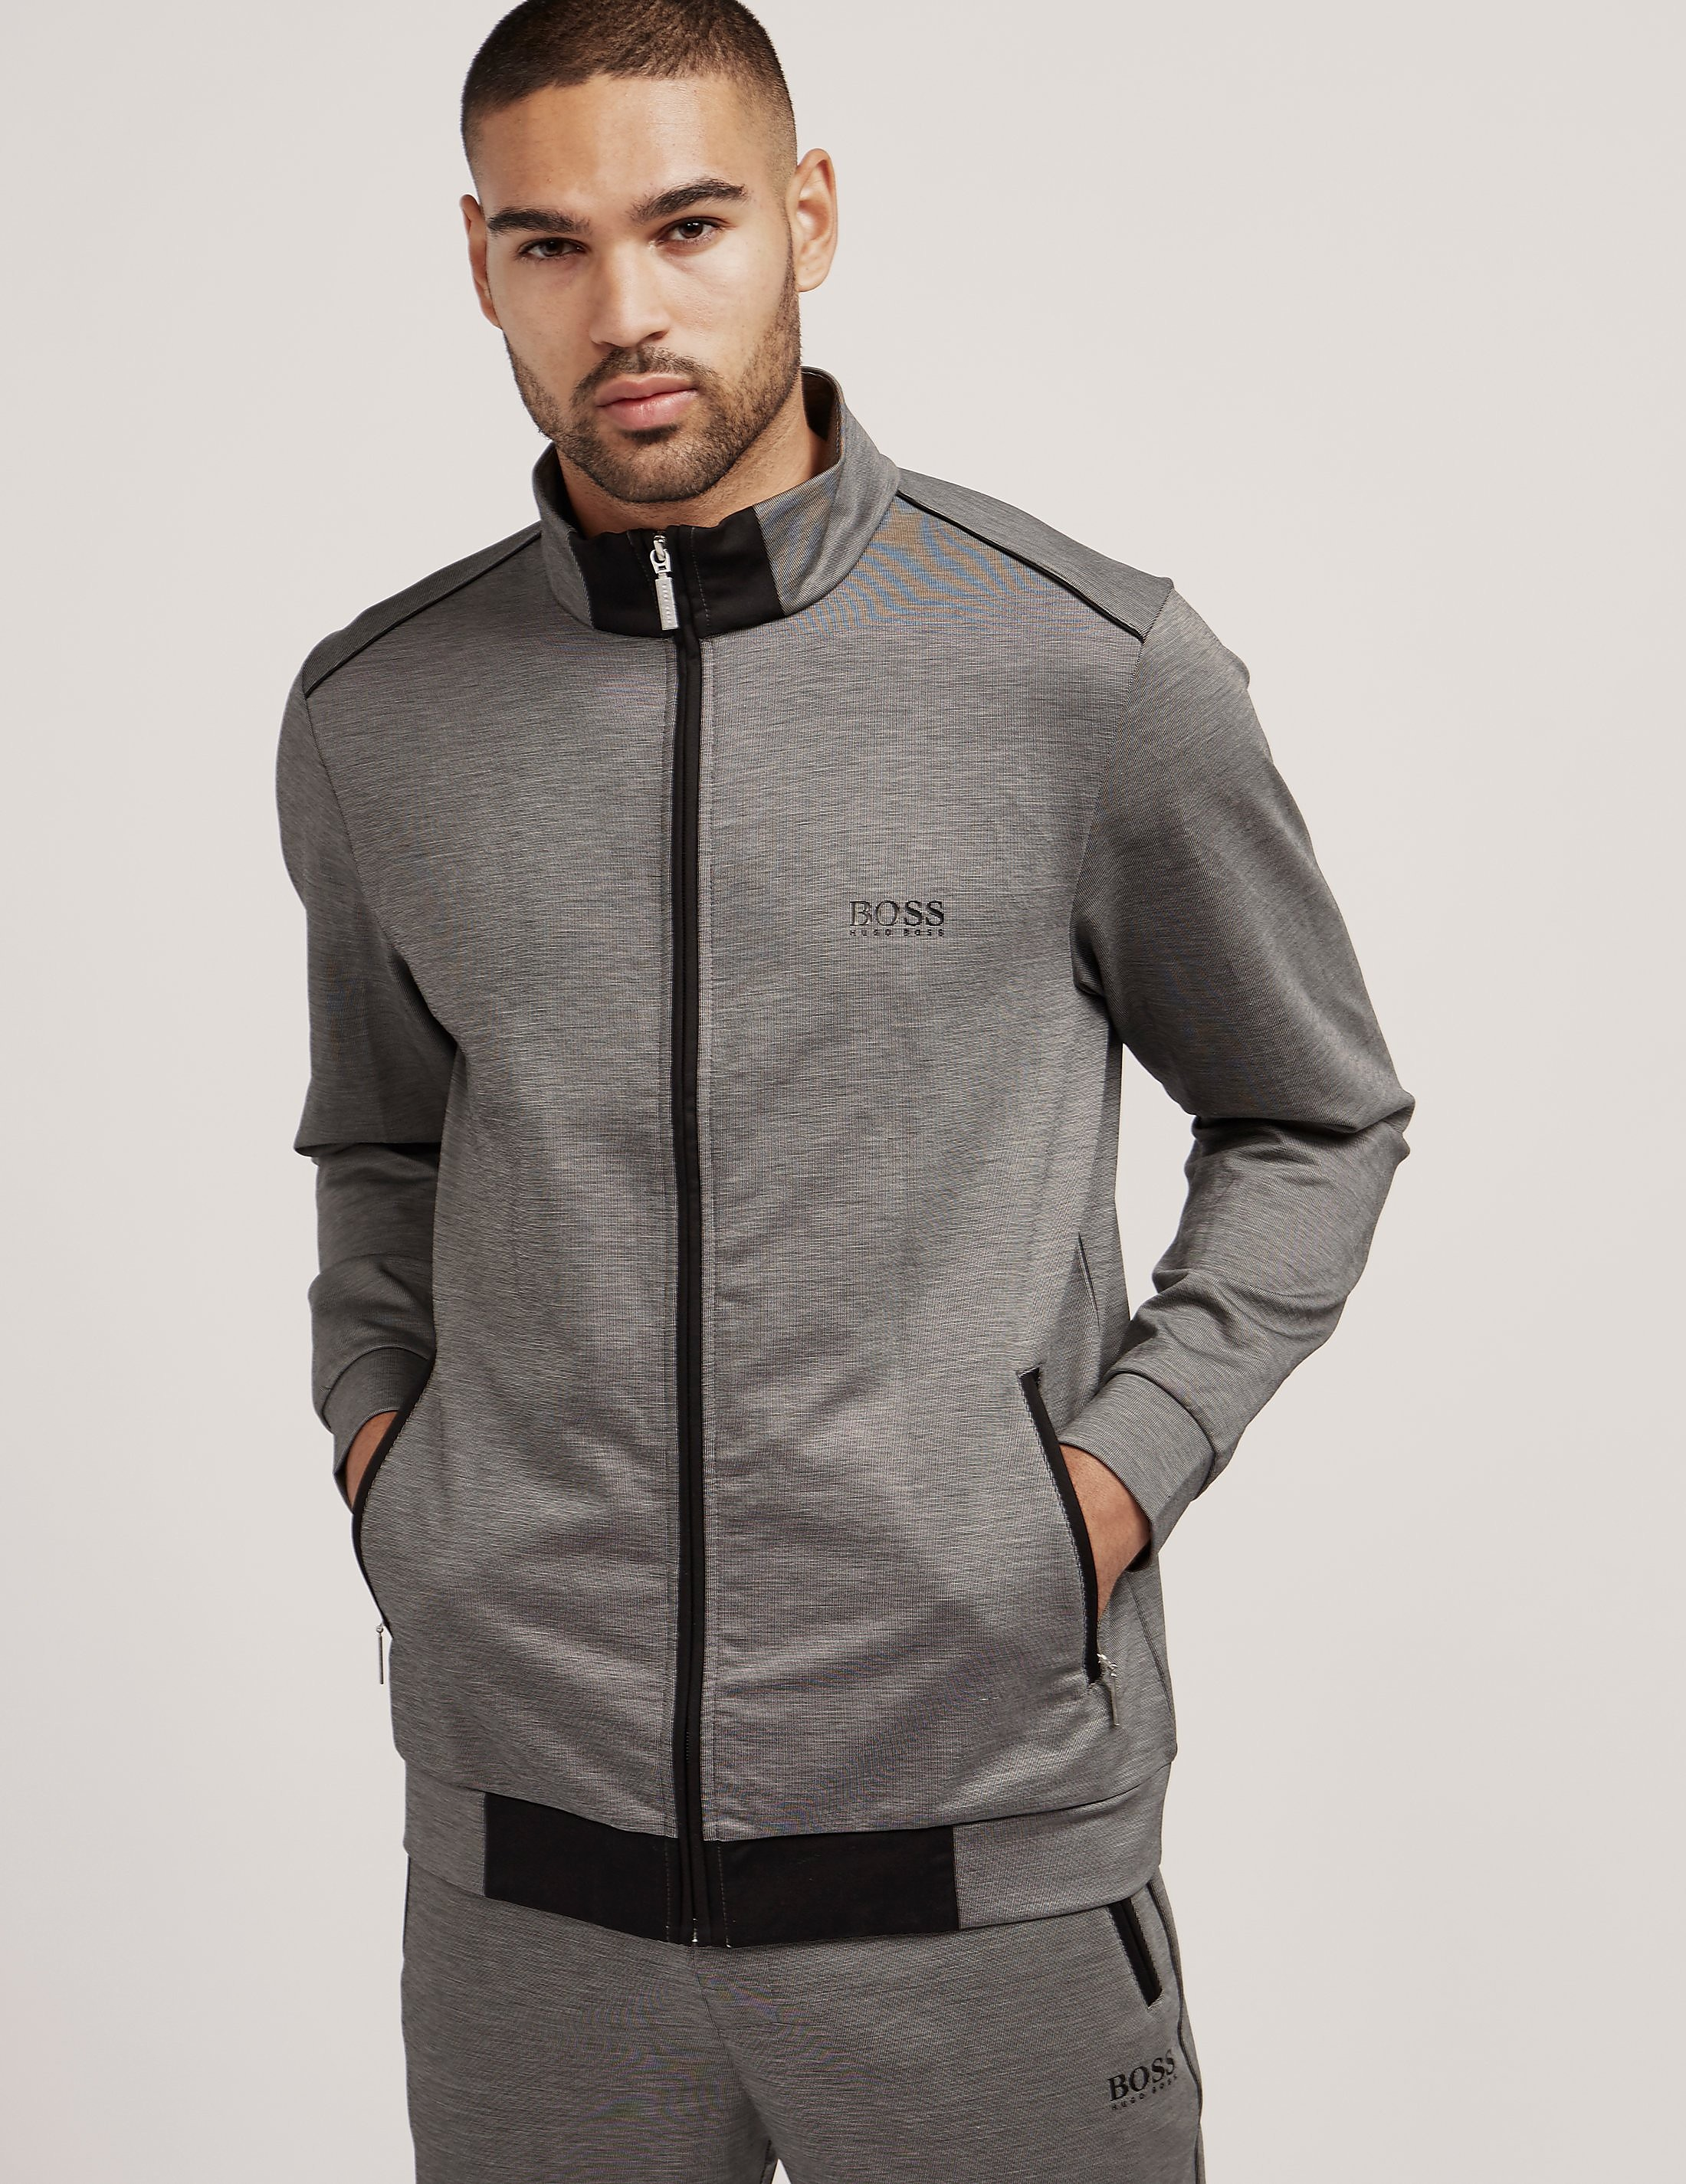 BOSS Interlock Track Top